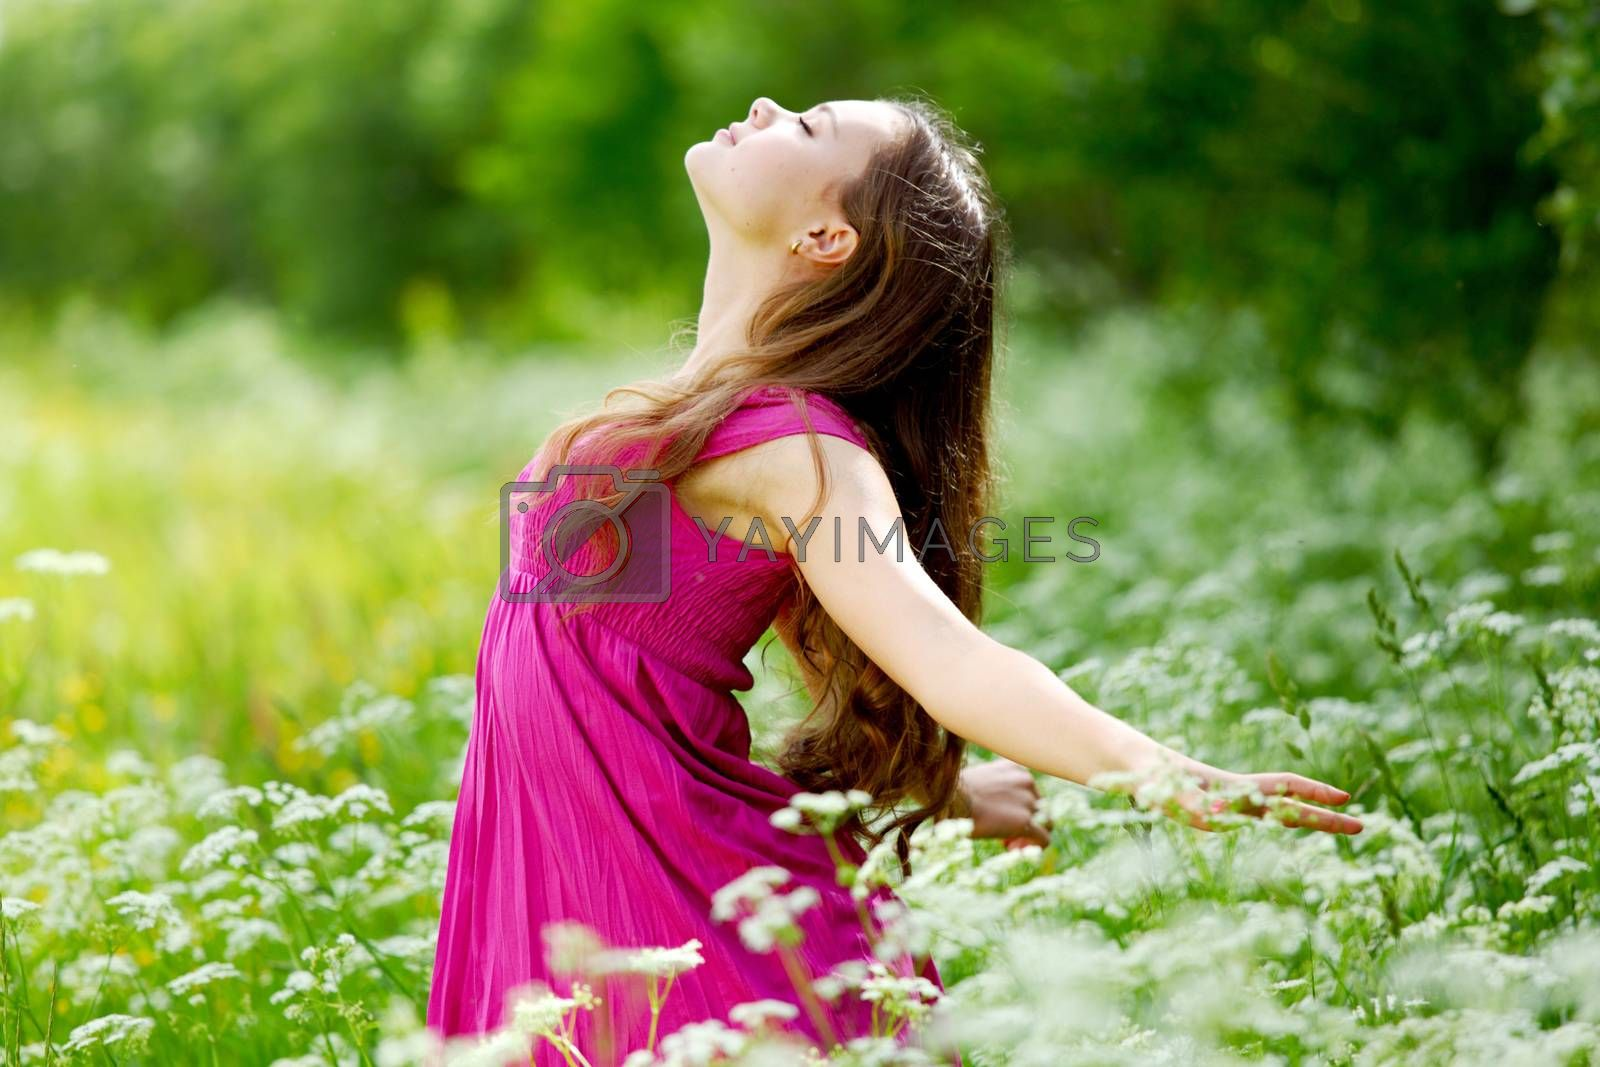 Woman outdoor feel natural freedom, summer flower meadow